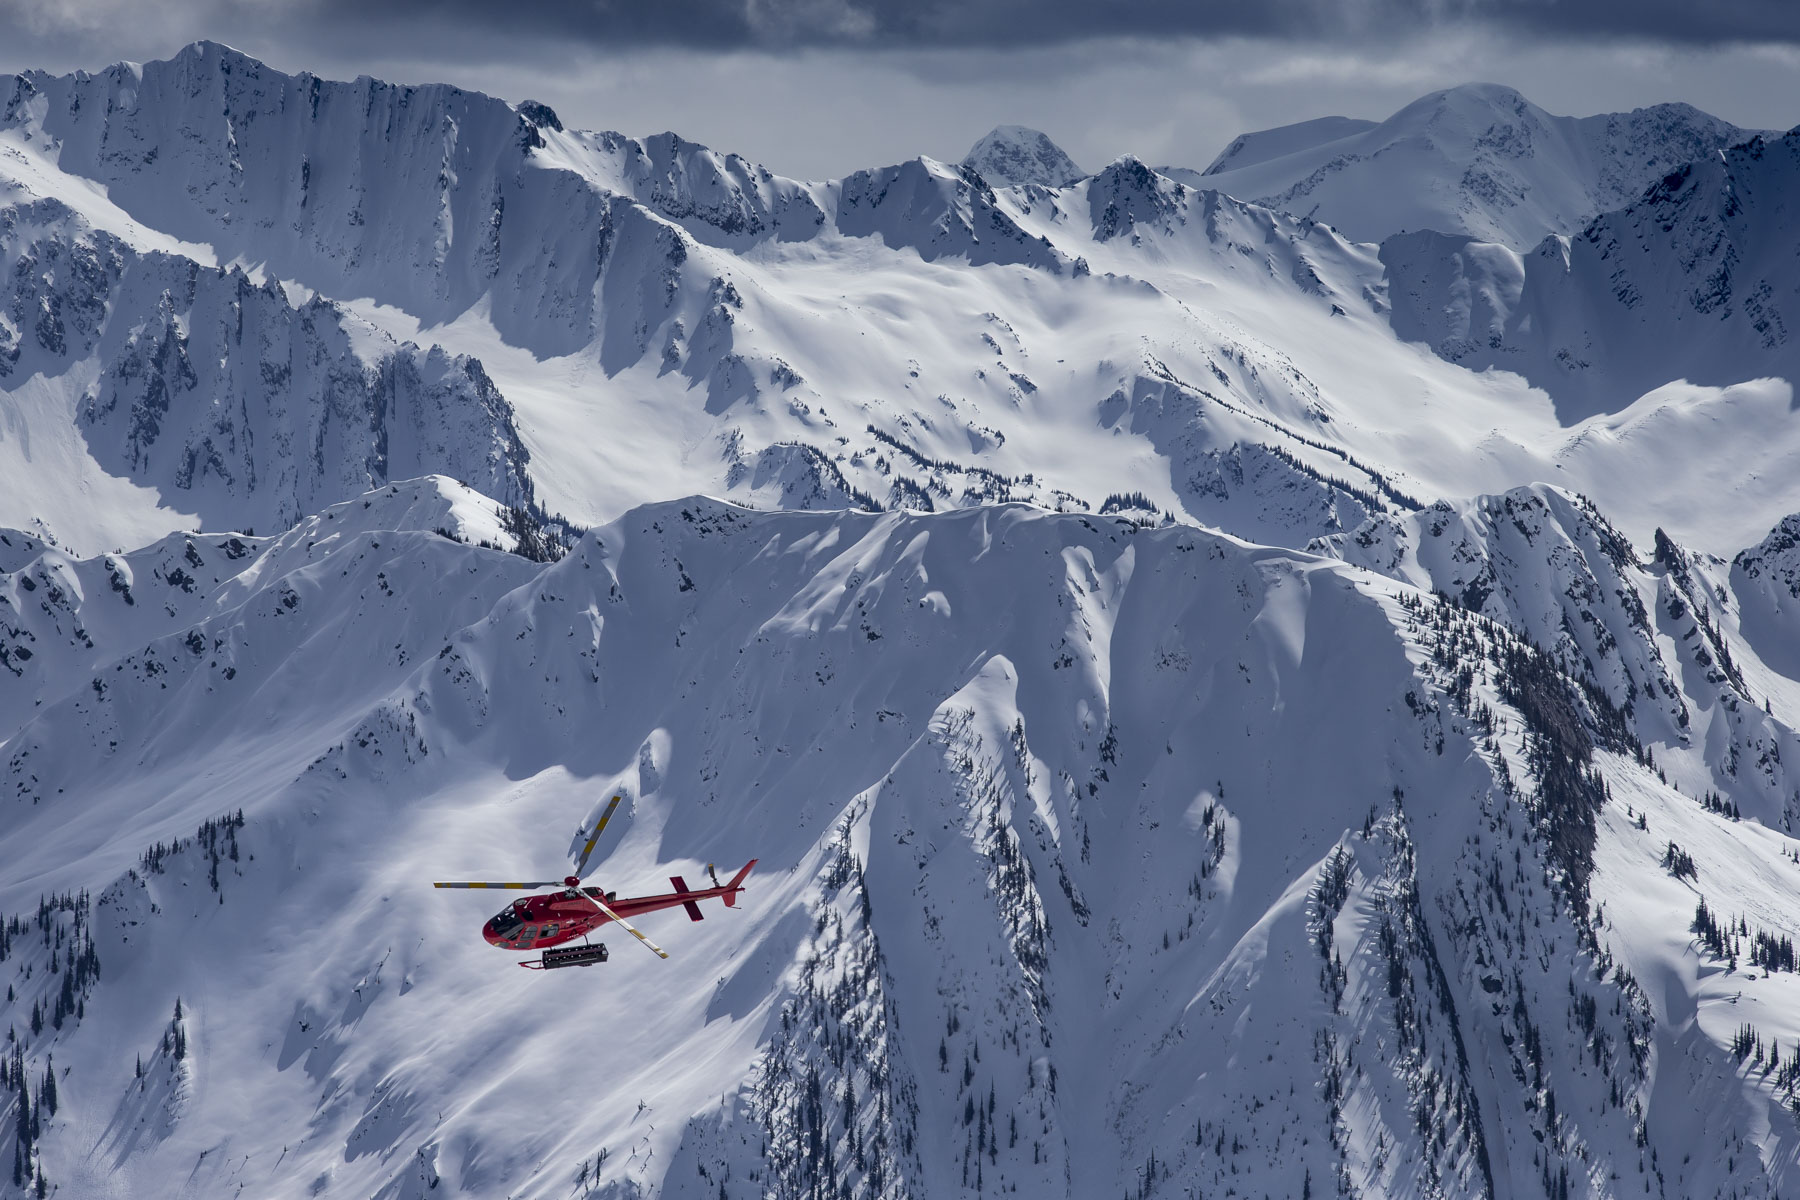 Pristine-Pow-and-Age-Old-Wisdom-at-Mica-Heliskiing-Lifestyle-Heli